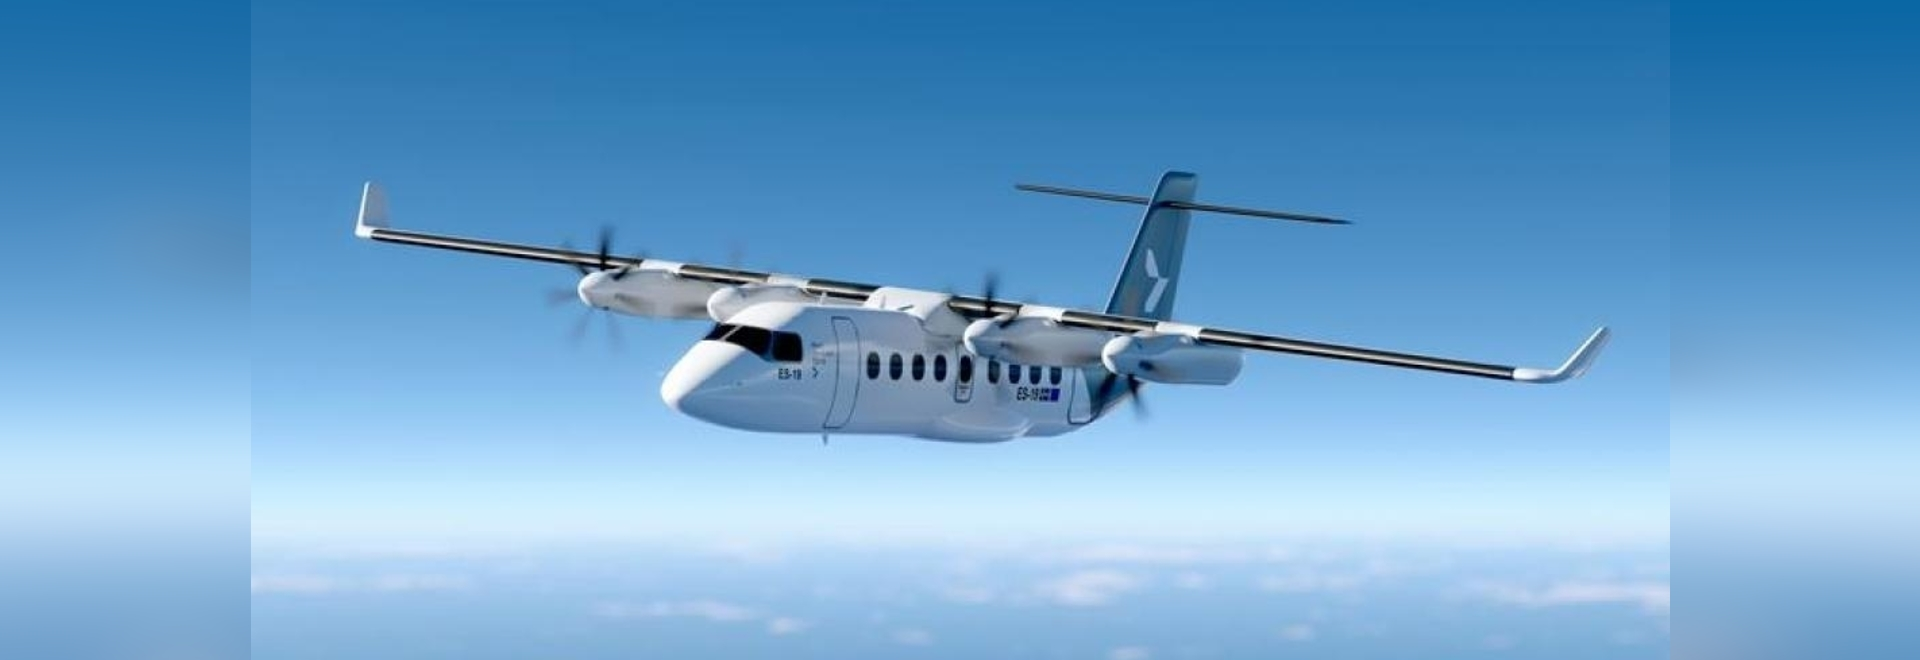 Heart Aerospace says it can get its all-electric ES19 regional airliner in commercial service in 2026.